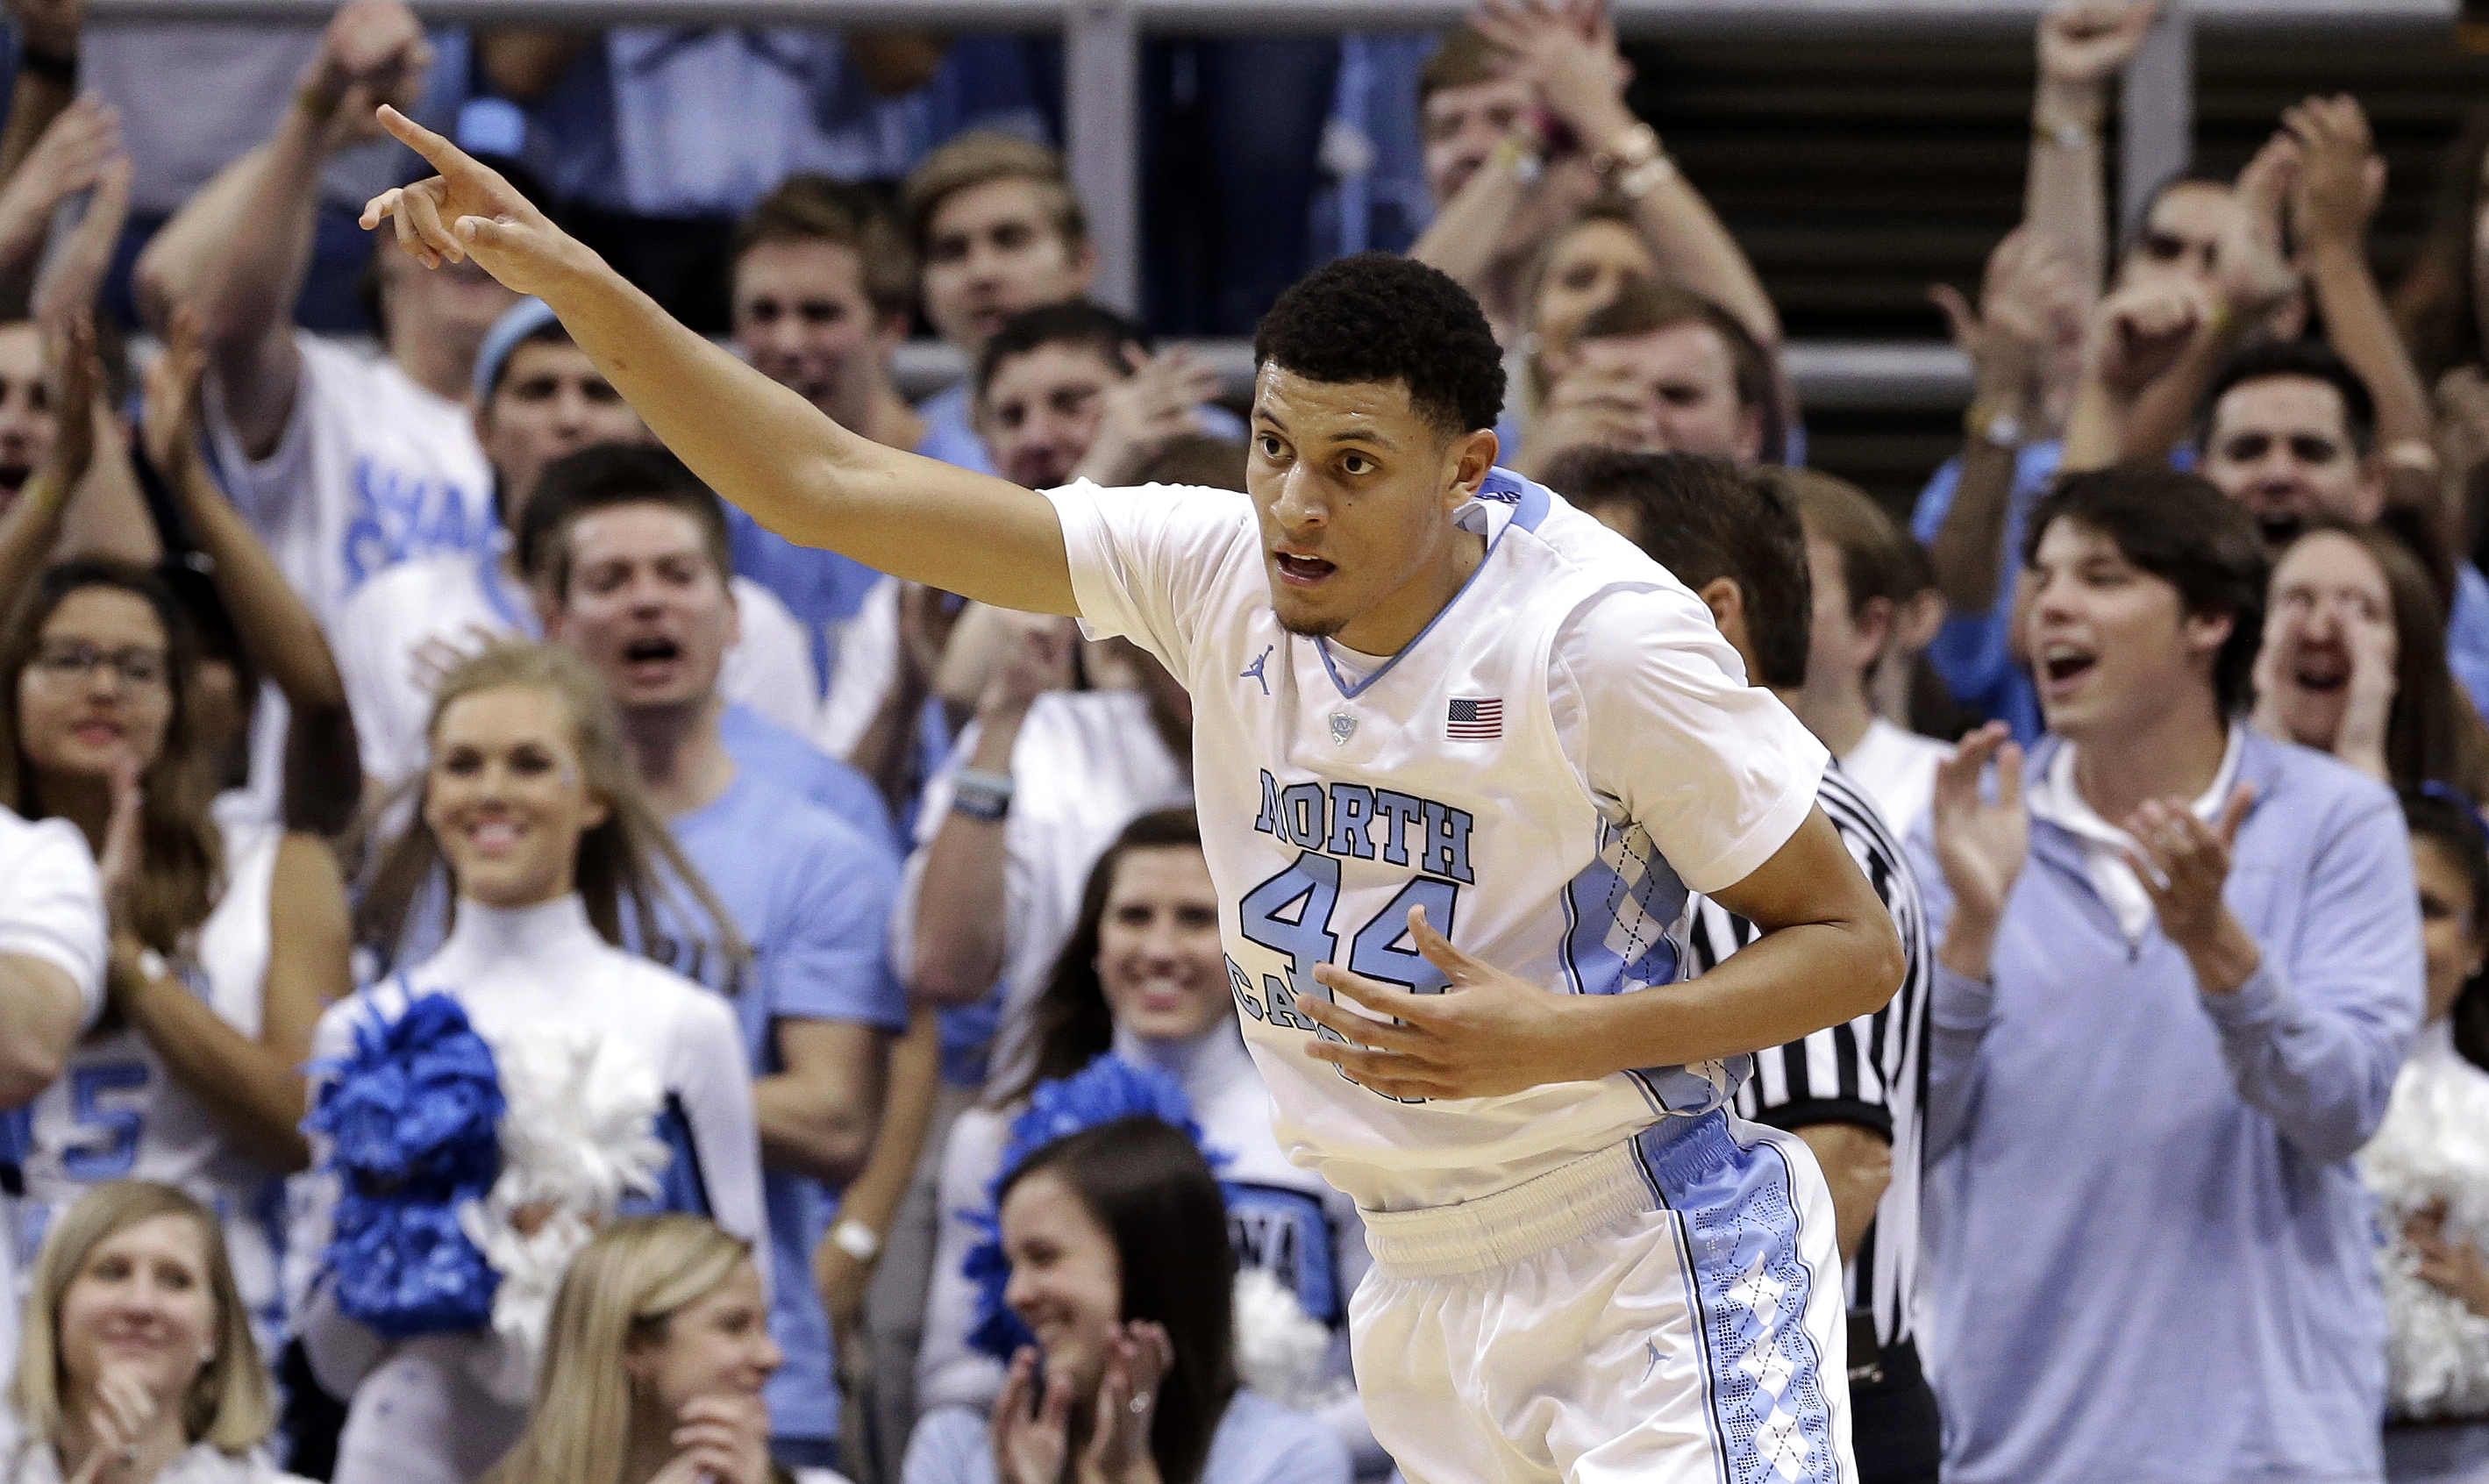 North Carolina's Justin Jackson (44) reacts following a basket against Fairfield during the second half of an NCAA college basketball game in Chapel Hill, N.C., Sunday, Nov. 15, 2015. North Carolina won 92-65. (AP Photo/Gerry Broome)